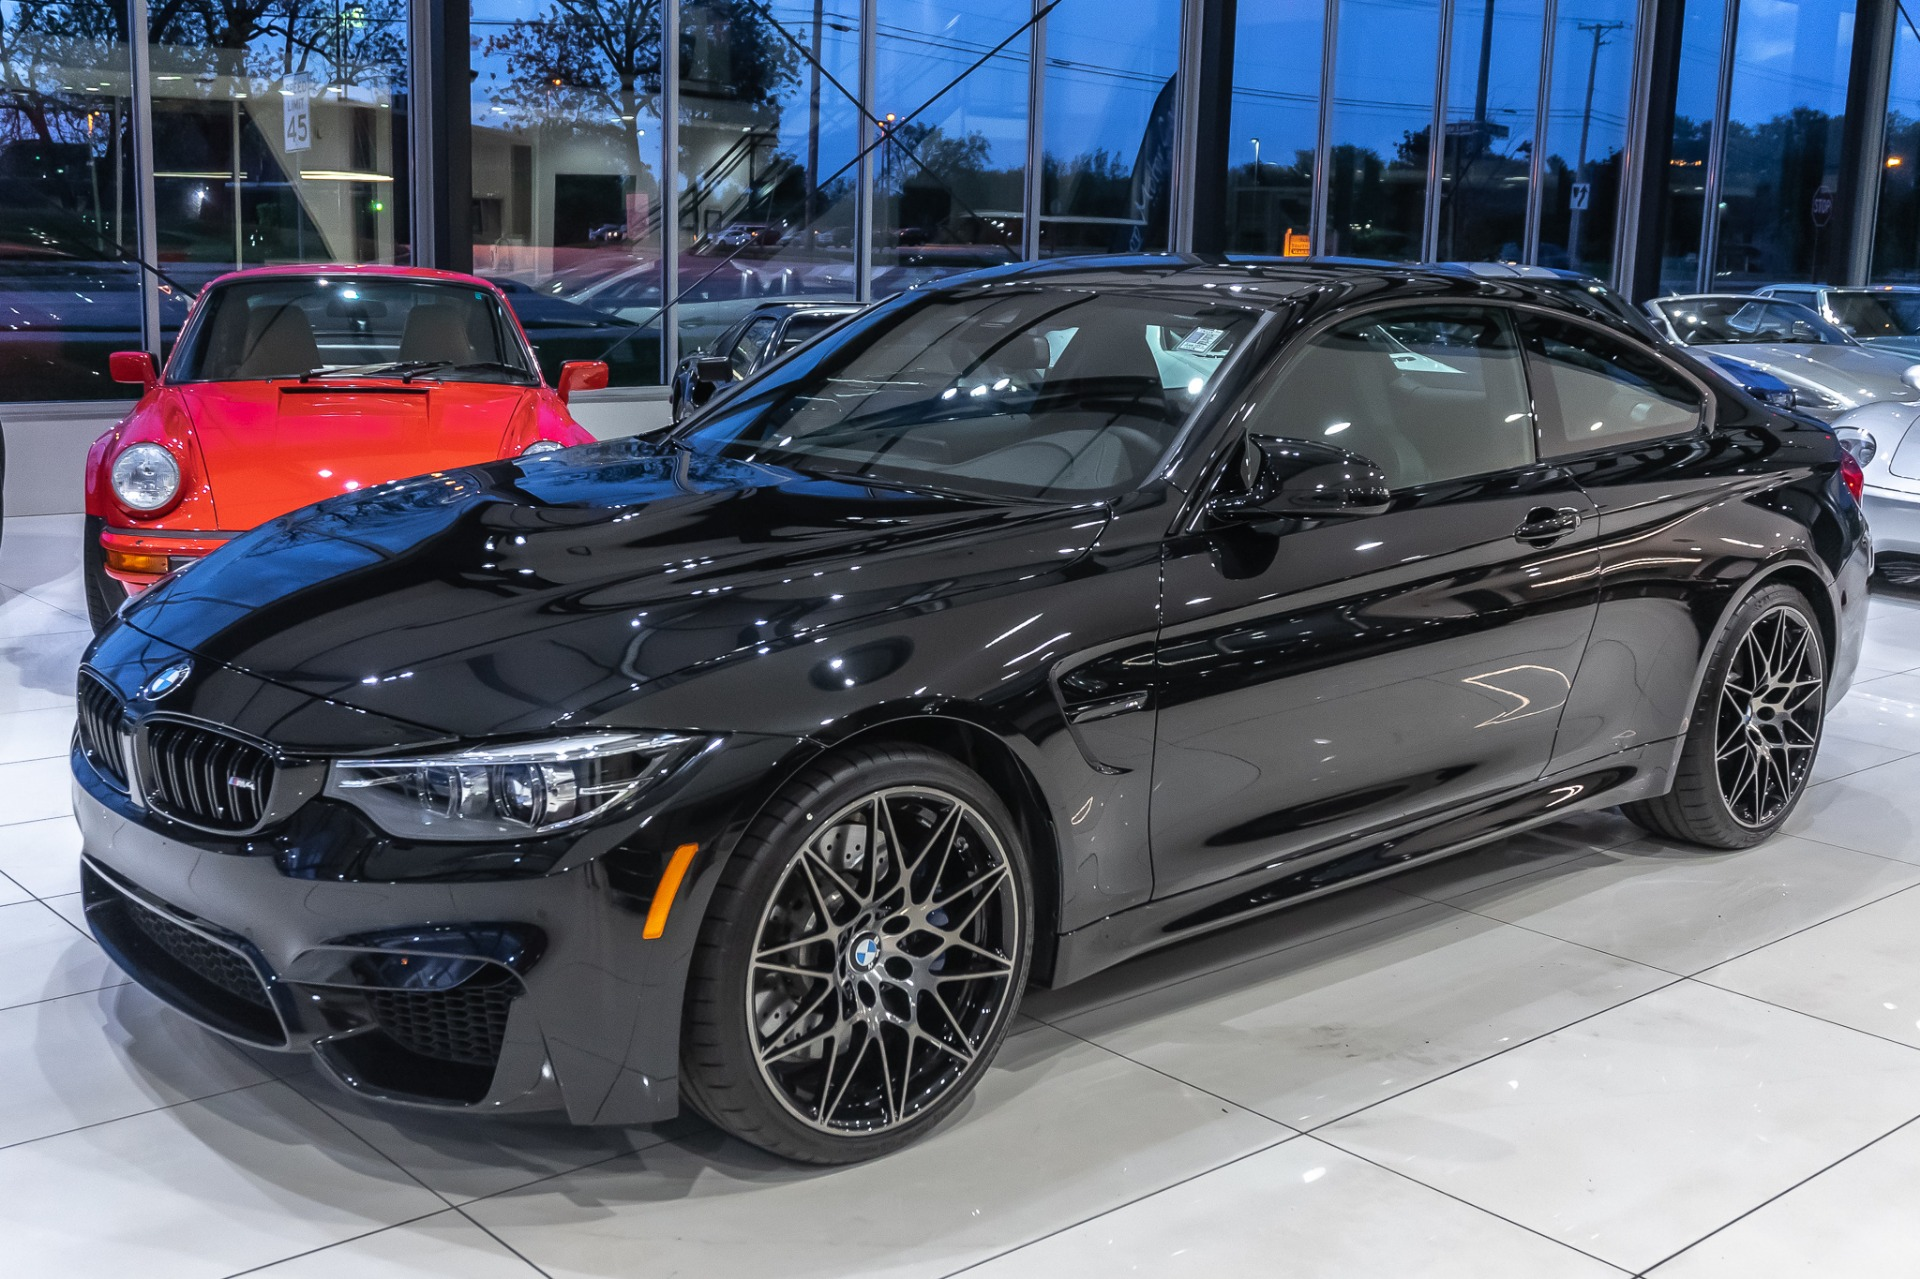 2019 Bmw M4 Competition Coupe Only 391 Miles Manual Transmission Chicago Motor Cars Inc Official Corporate Website For Chicago Motor Cars